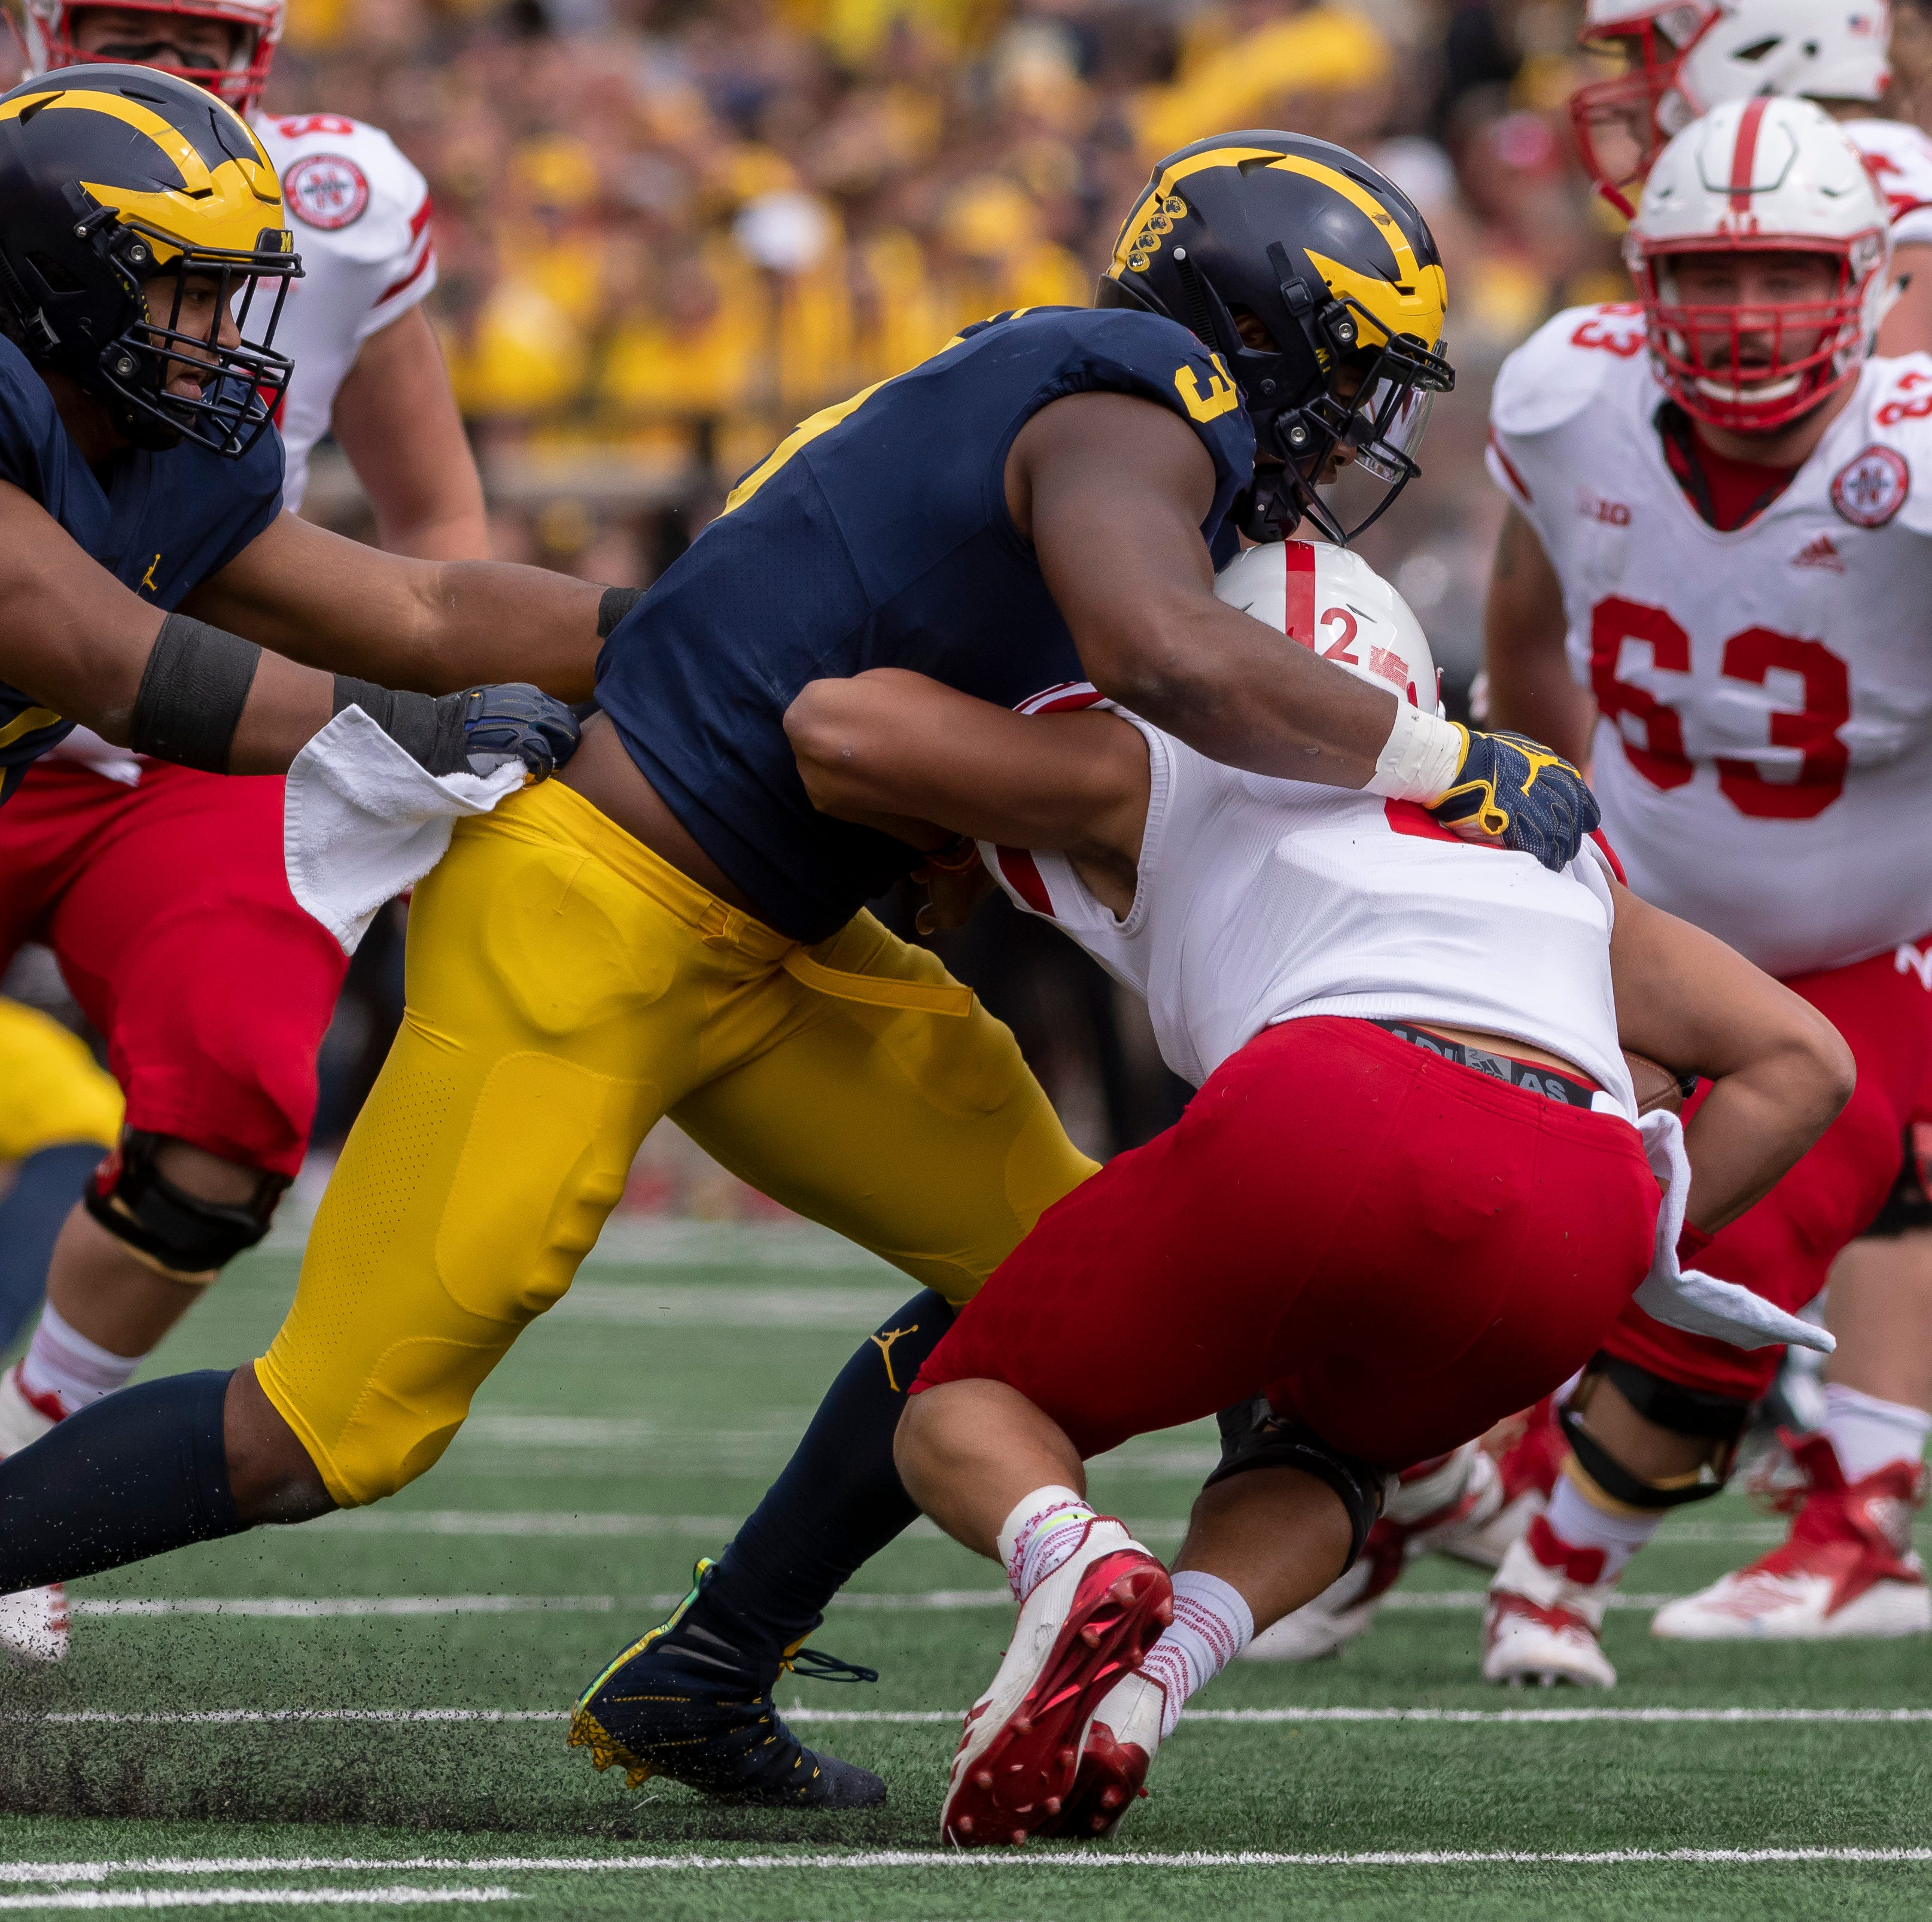 'We wanted it bad': Michigan mashes Nebraska in B1G opener